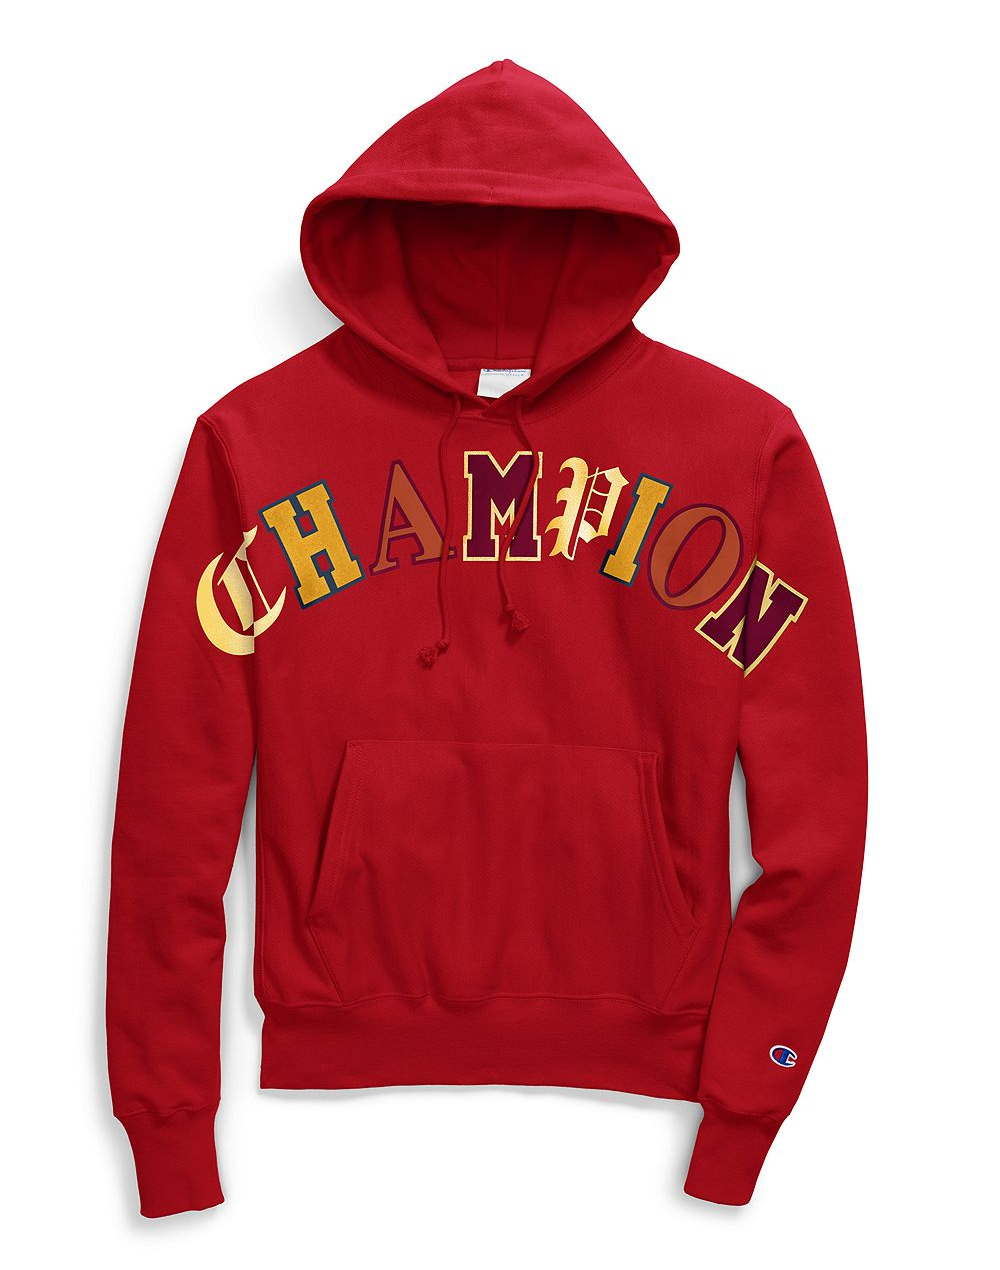 Champion Life® Men's Reverse Weave® Pullover Hoodie, Old English Lettering Red - City Limit NY